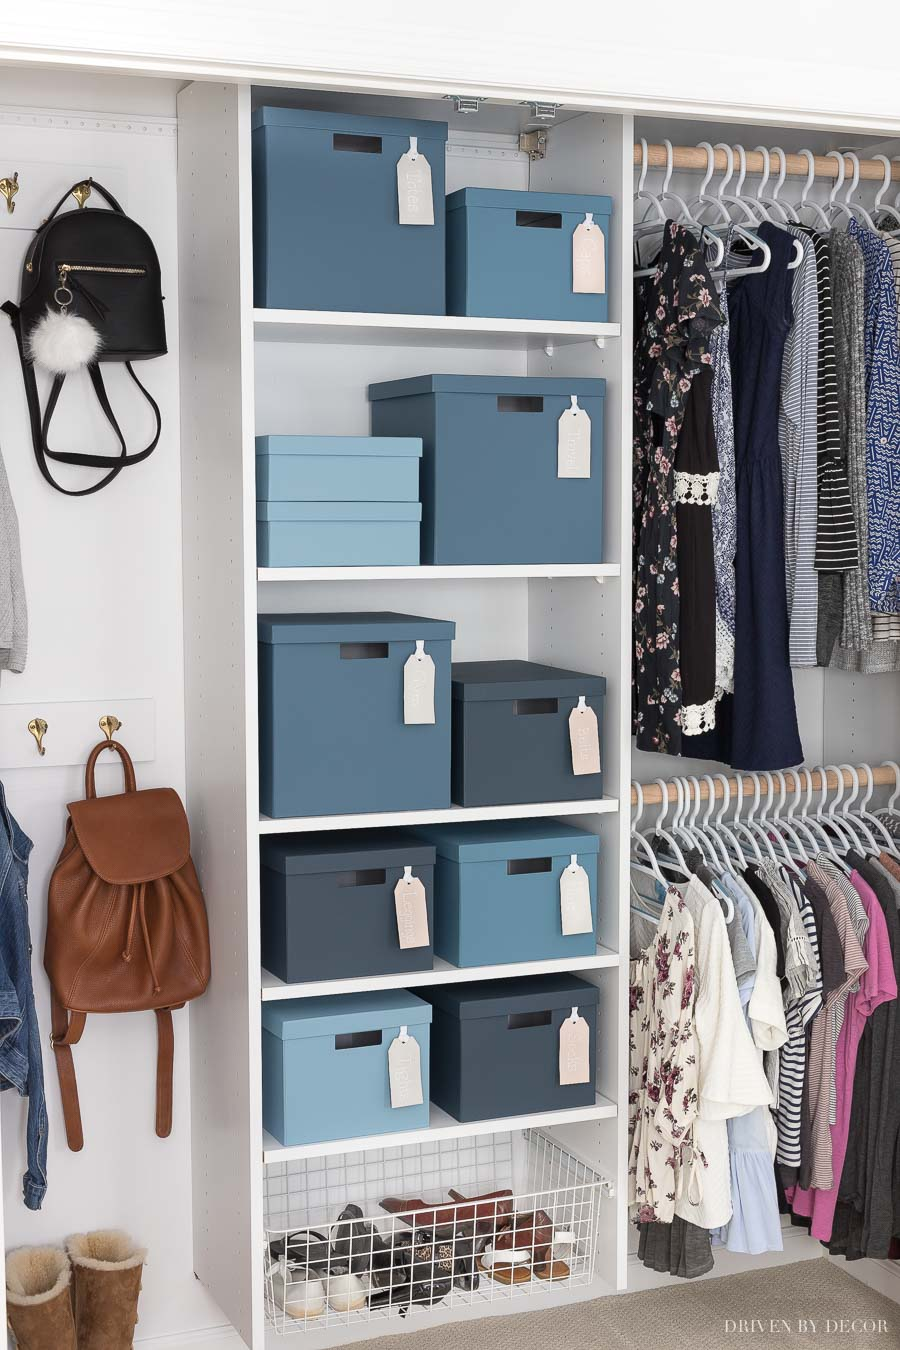 Closet system painted with with blue painted boxes for storage - so cute!